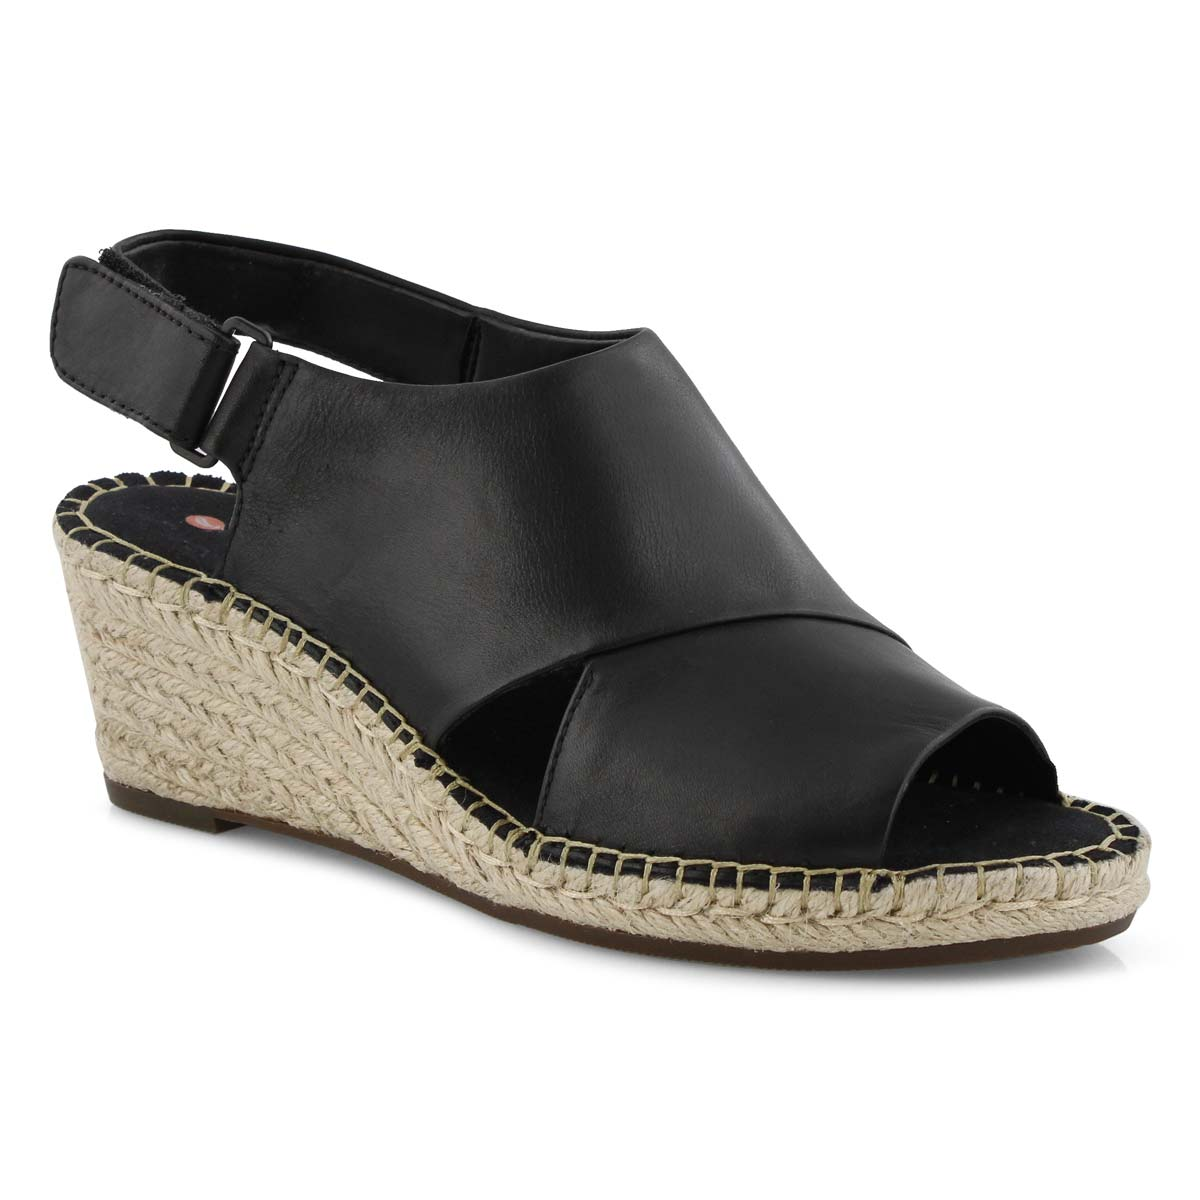 Lds Petrina Abby blk wedge sandal